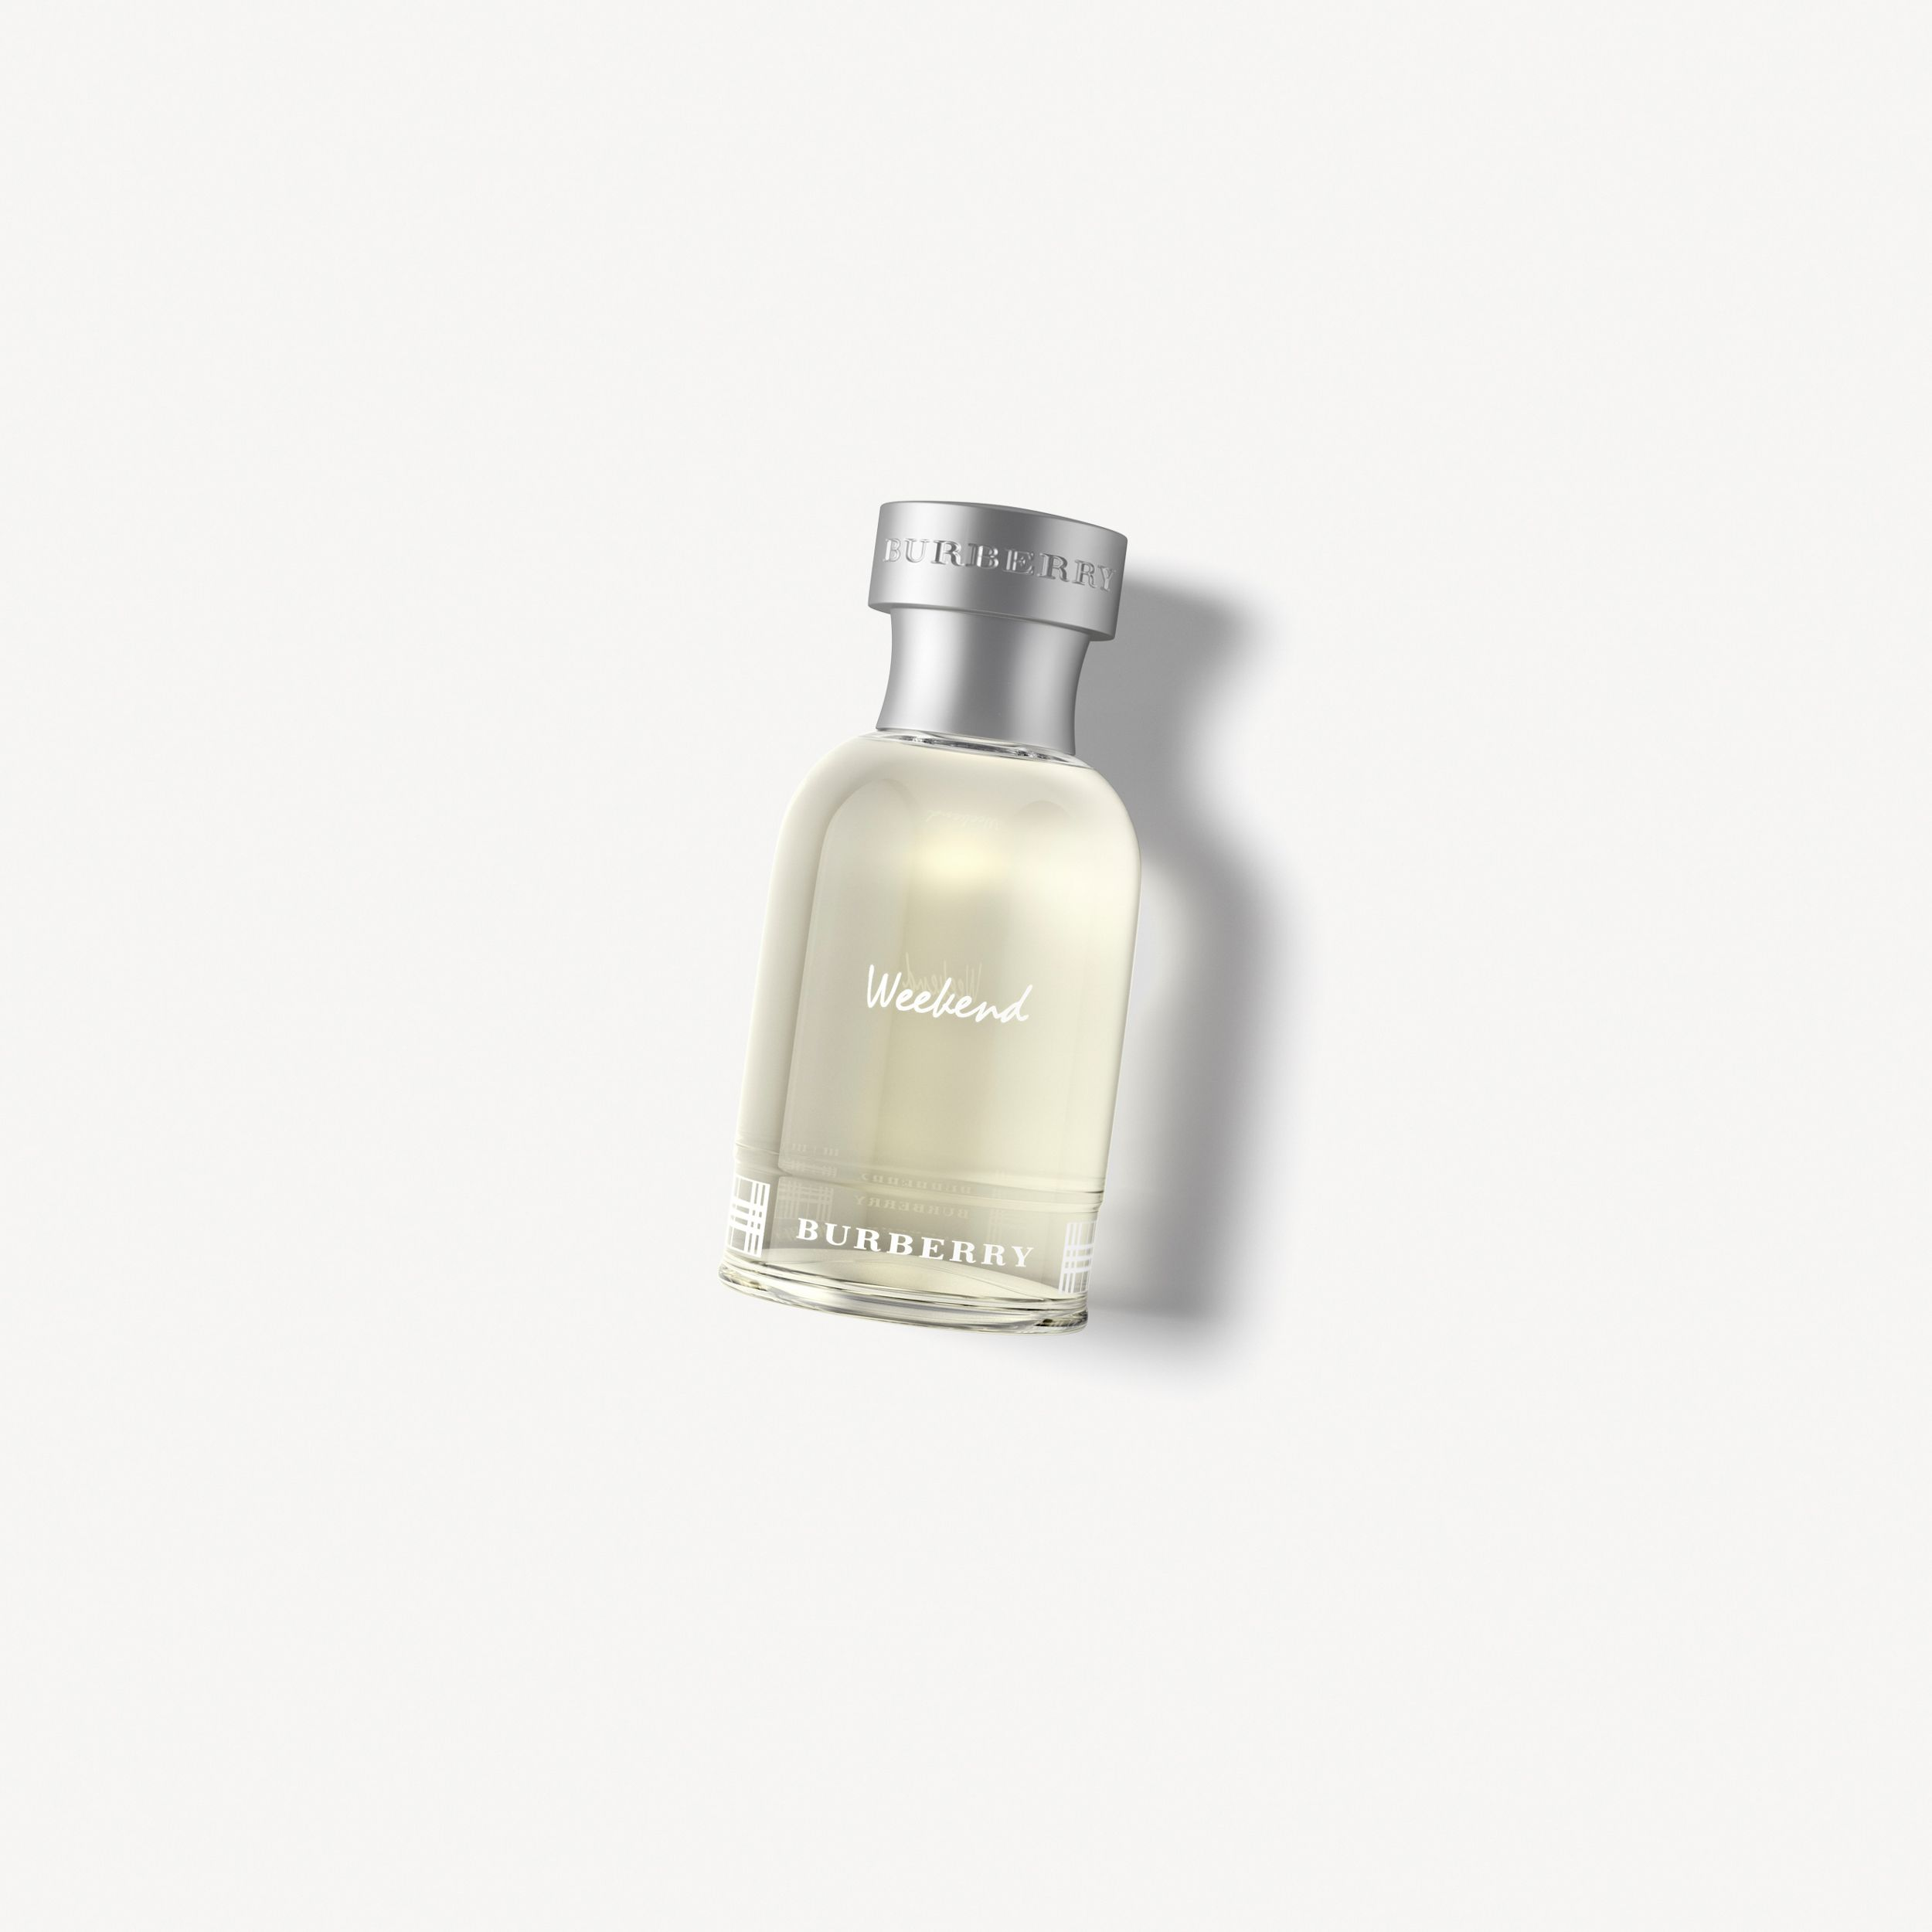 Burberry Weekend Eau de toilette 50 ml - Homme | Burberry Canada - 1